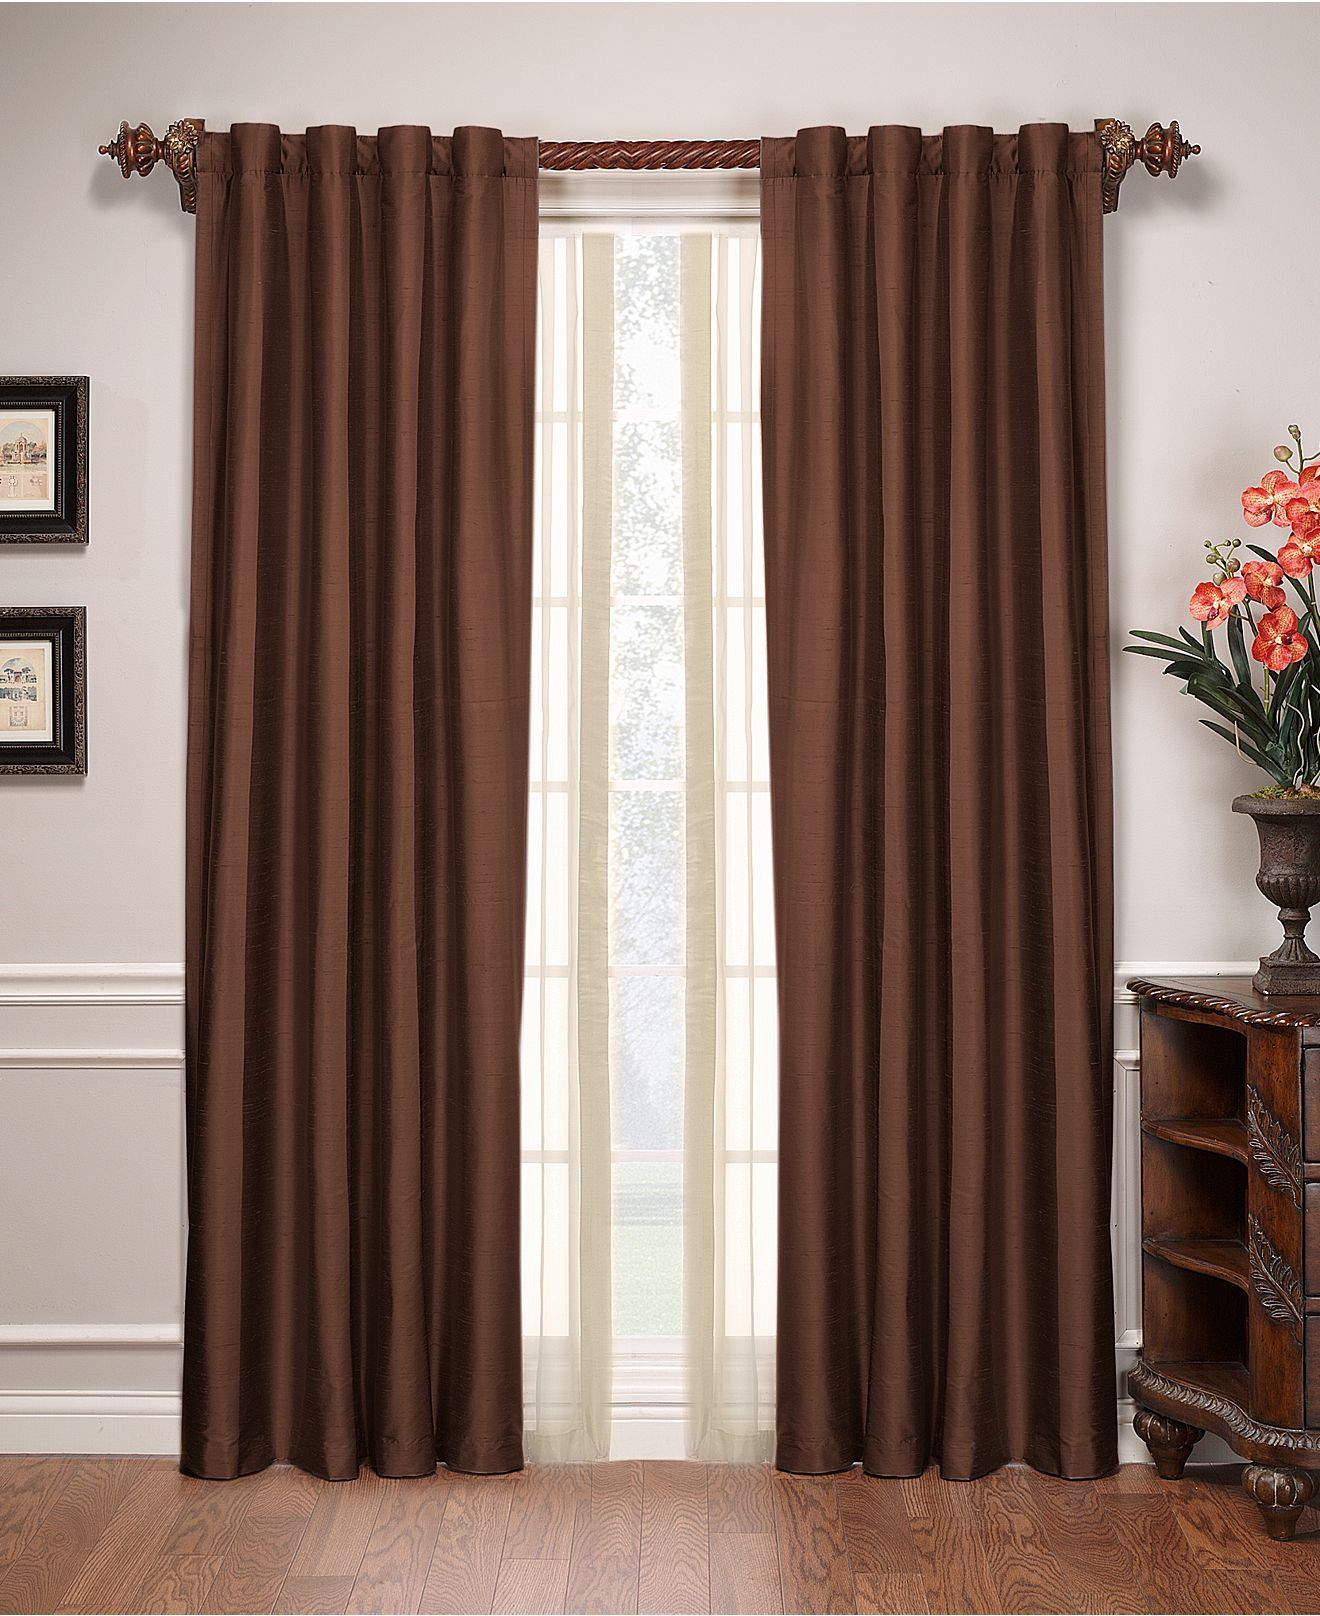 Macy's Curtains For Living Room : curtains - living room  Drapery ideas  Pinterest ...